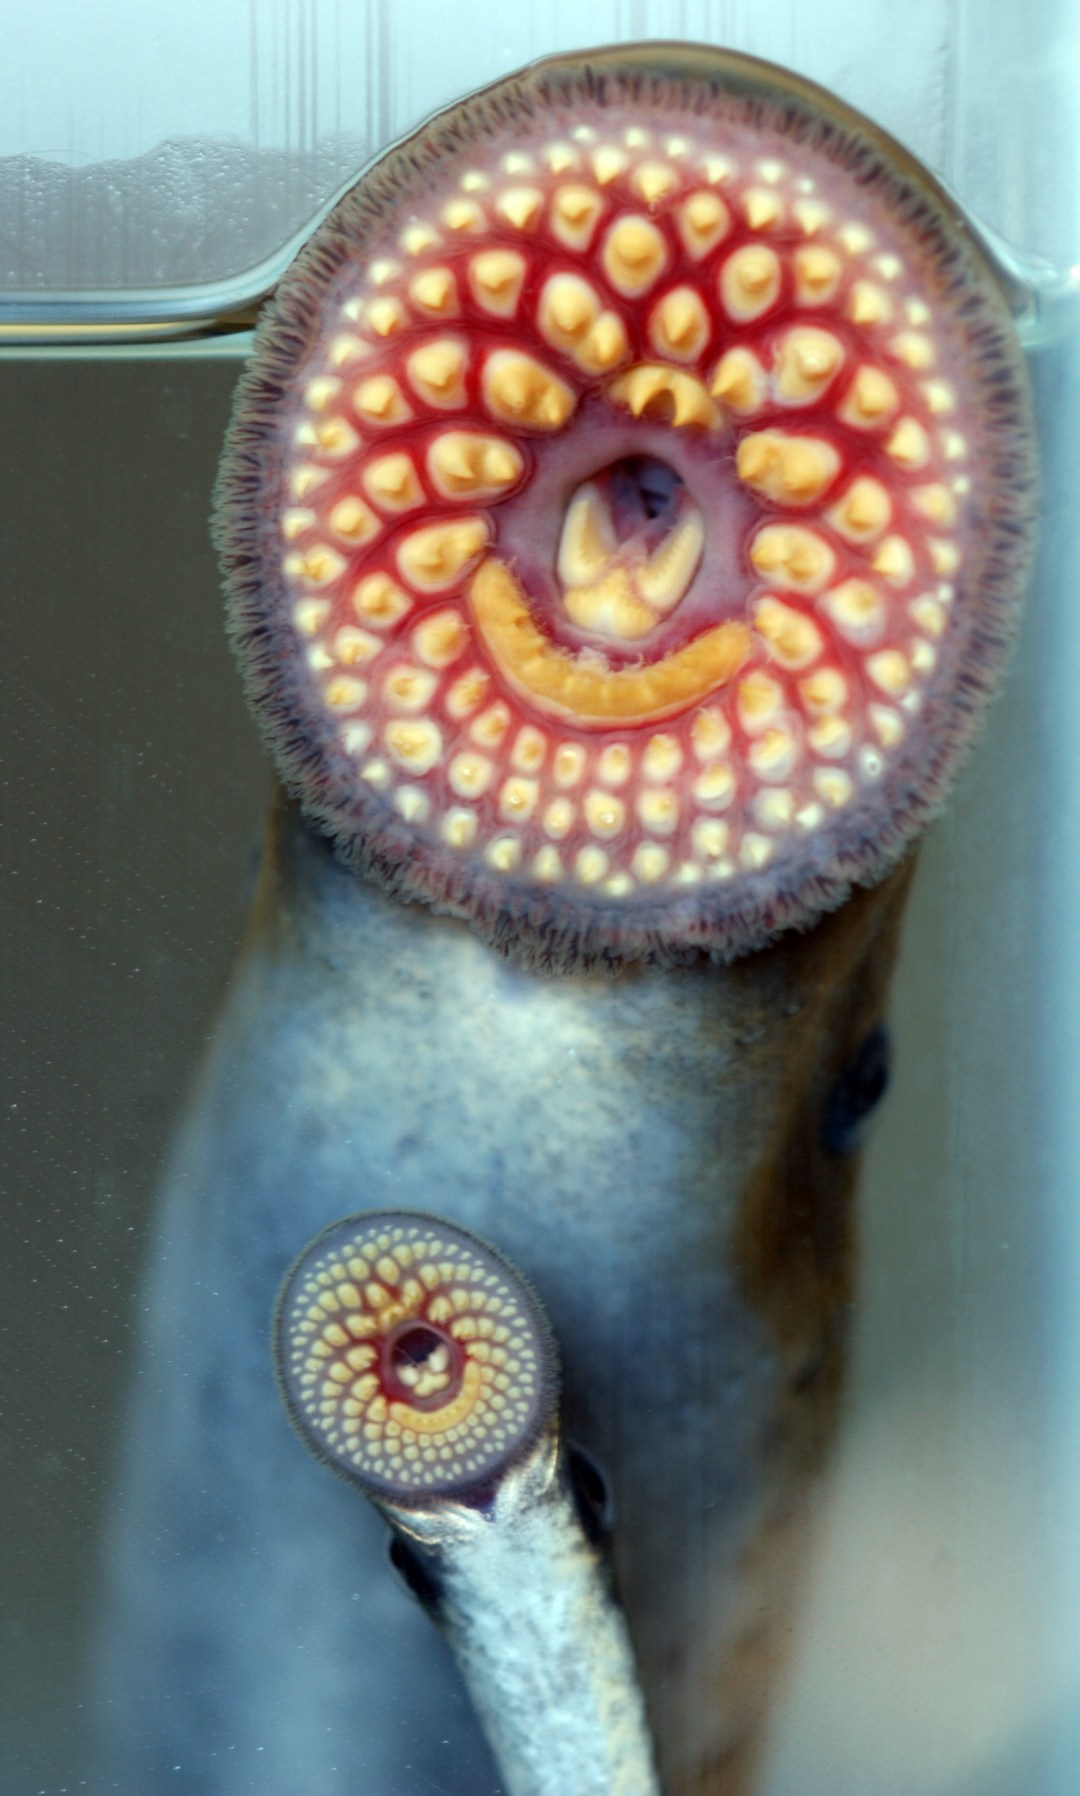 Sea lamprey show off their rows and rows of teeth.